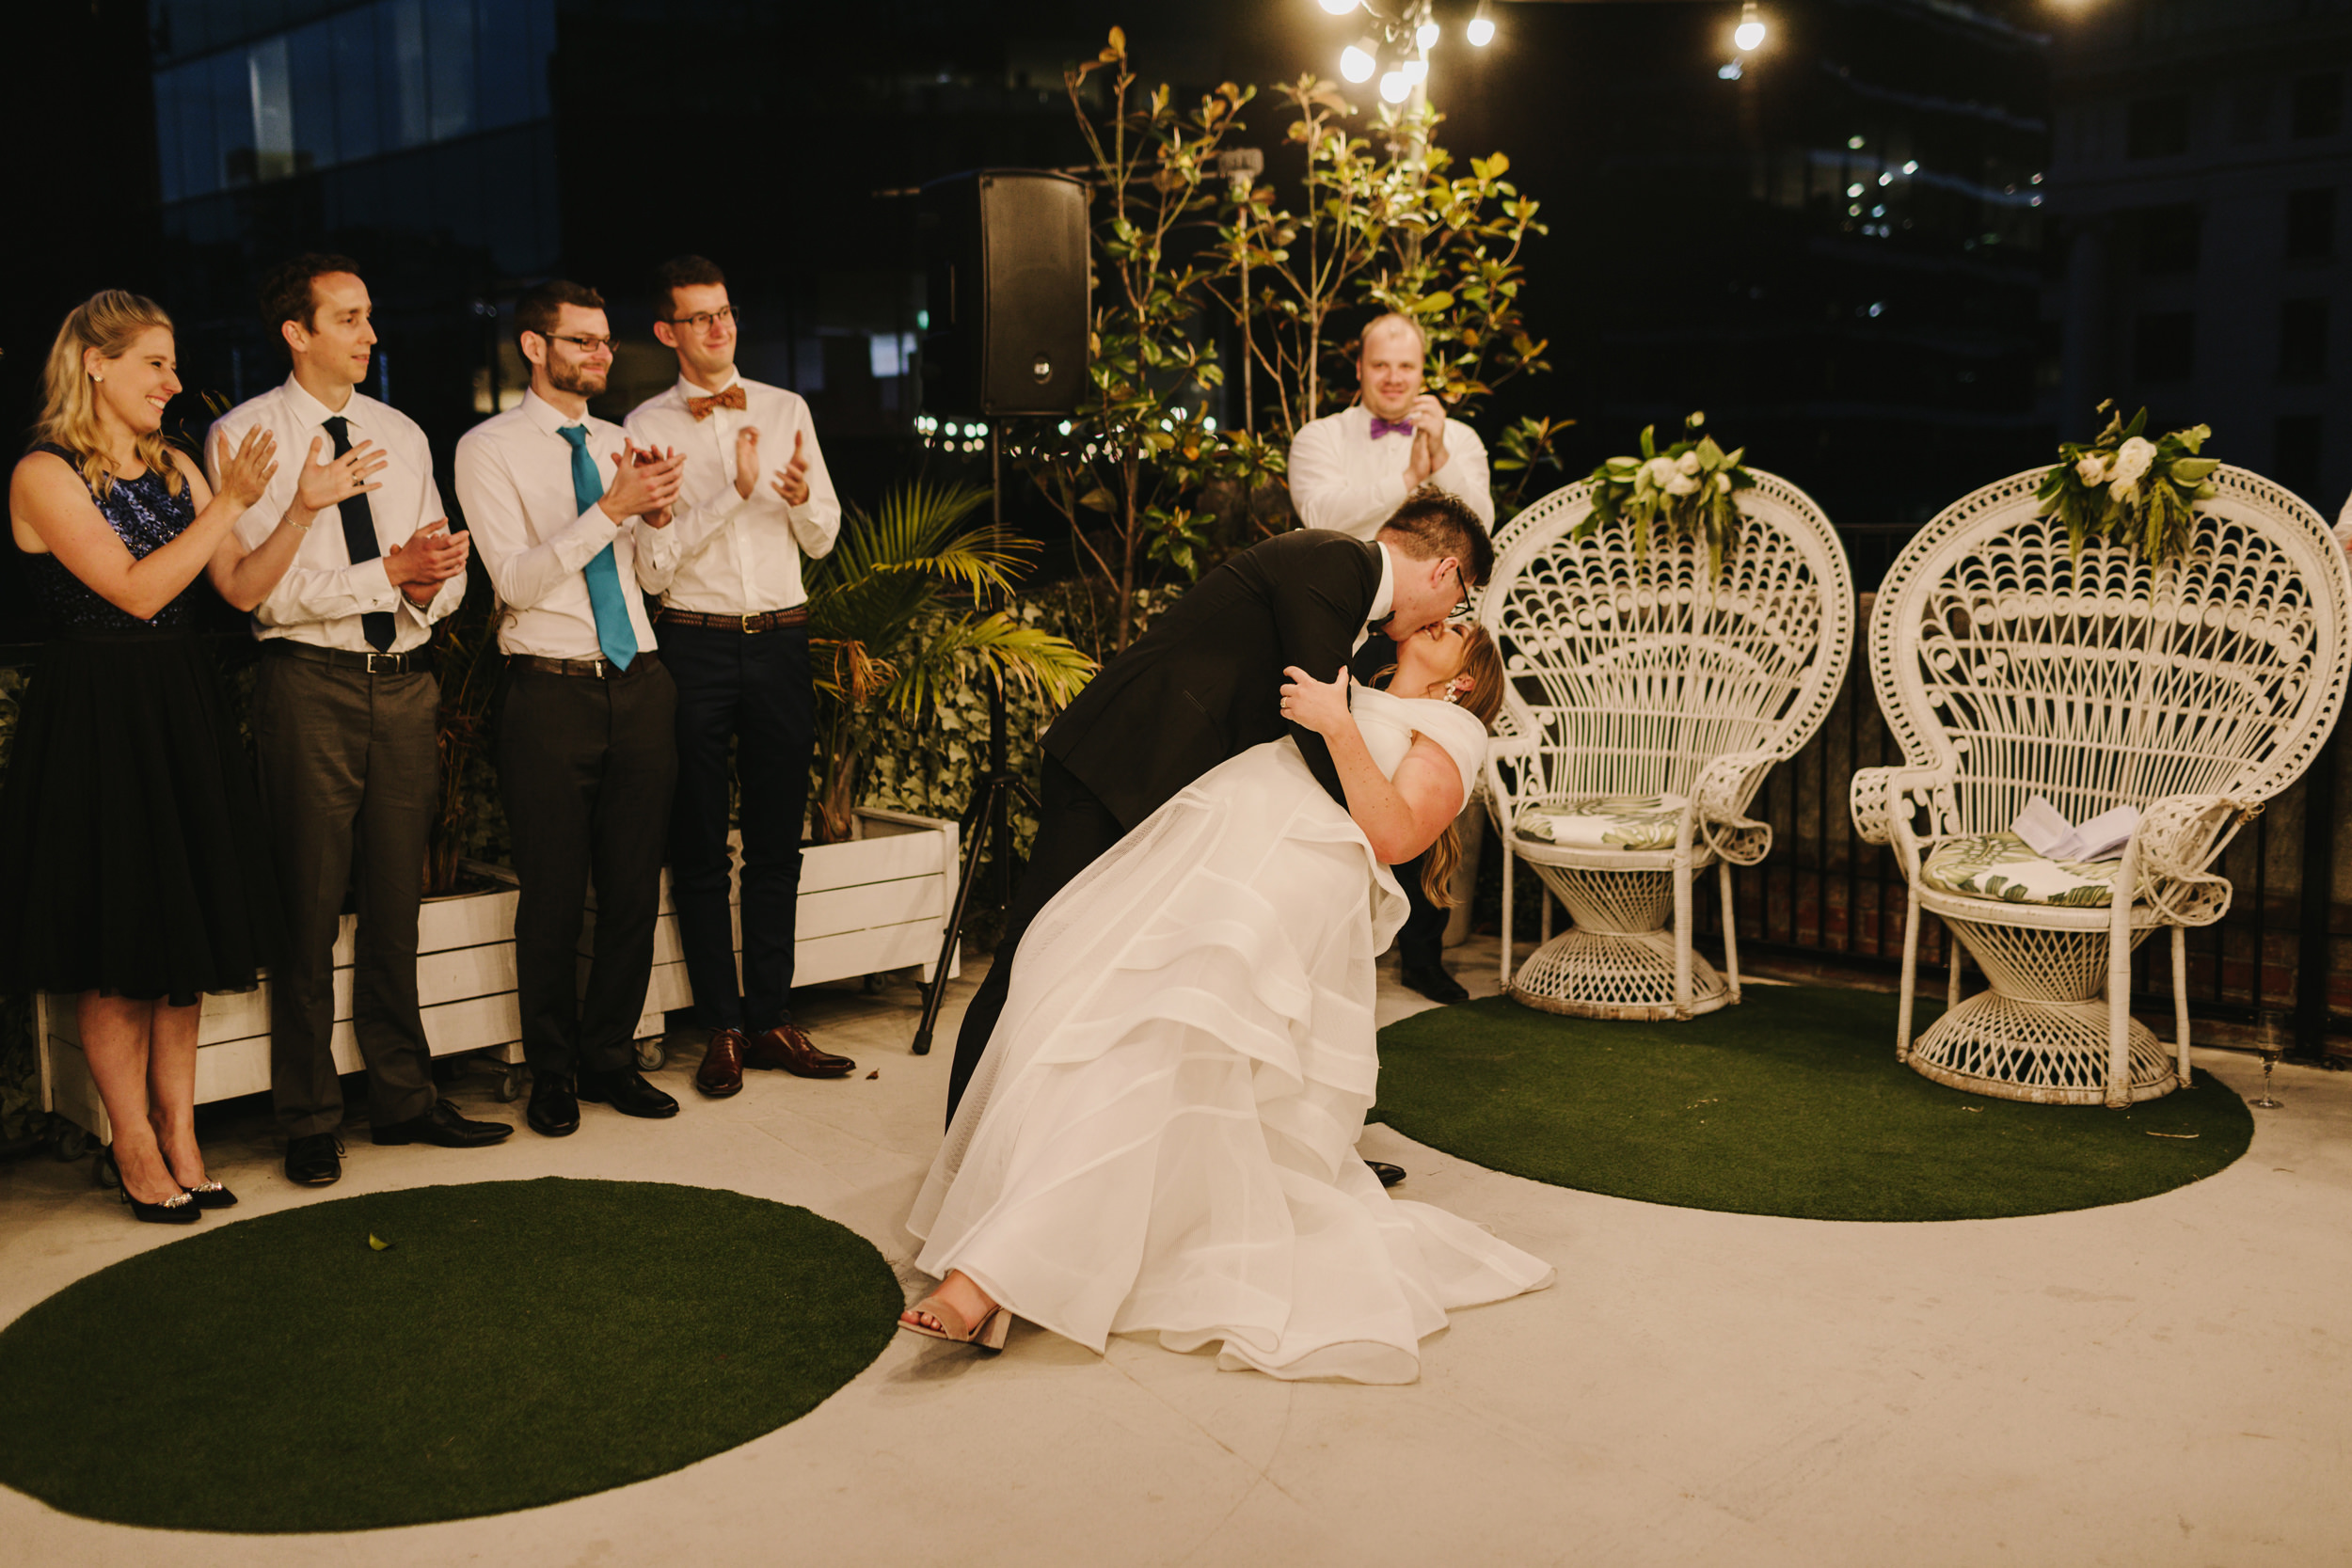 Melbourne_City_Rooftop_Wedding_Tyson_Brigette135.JPG